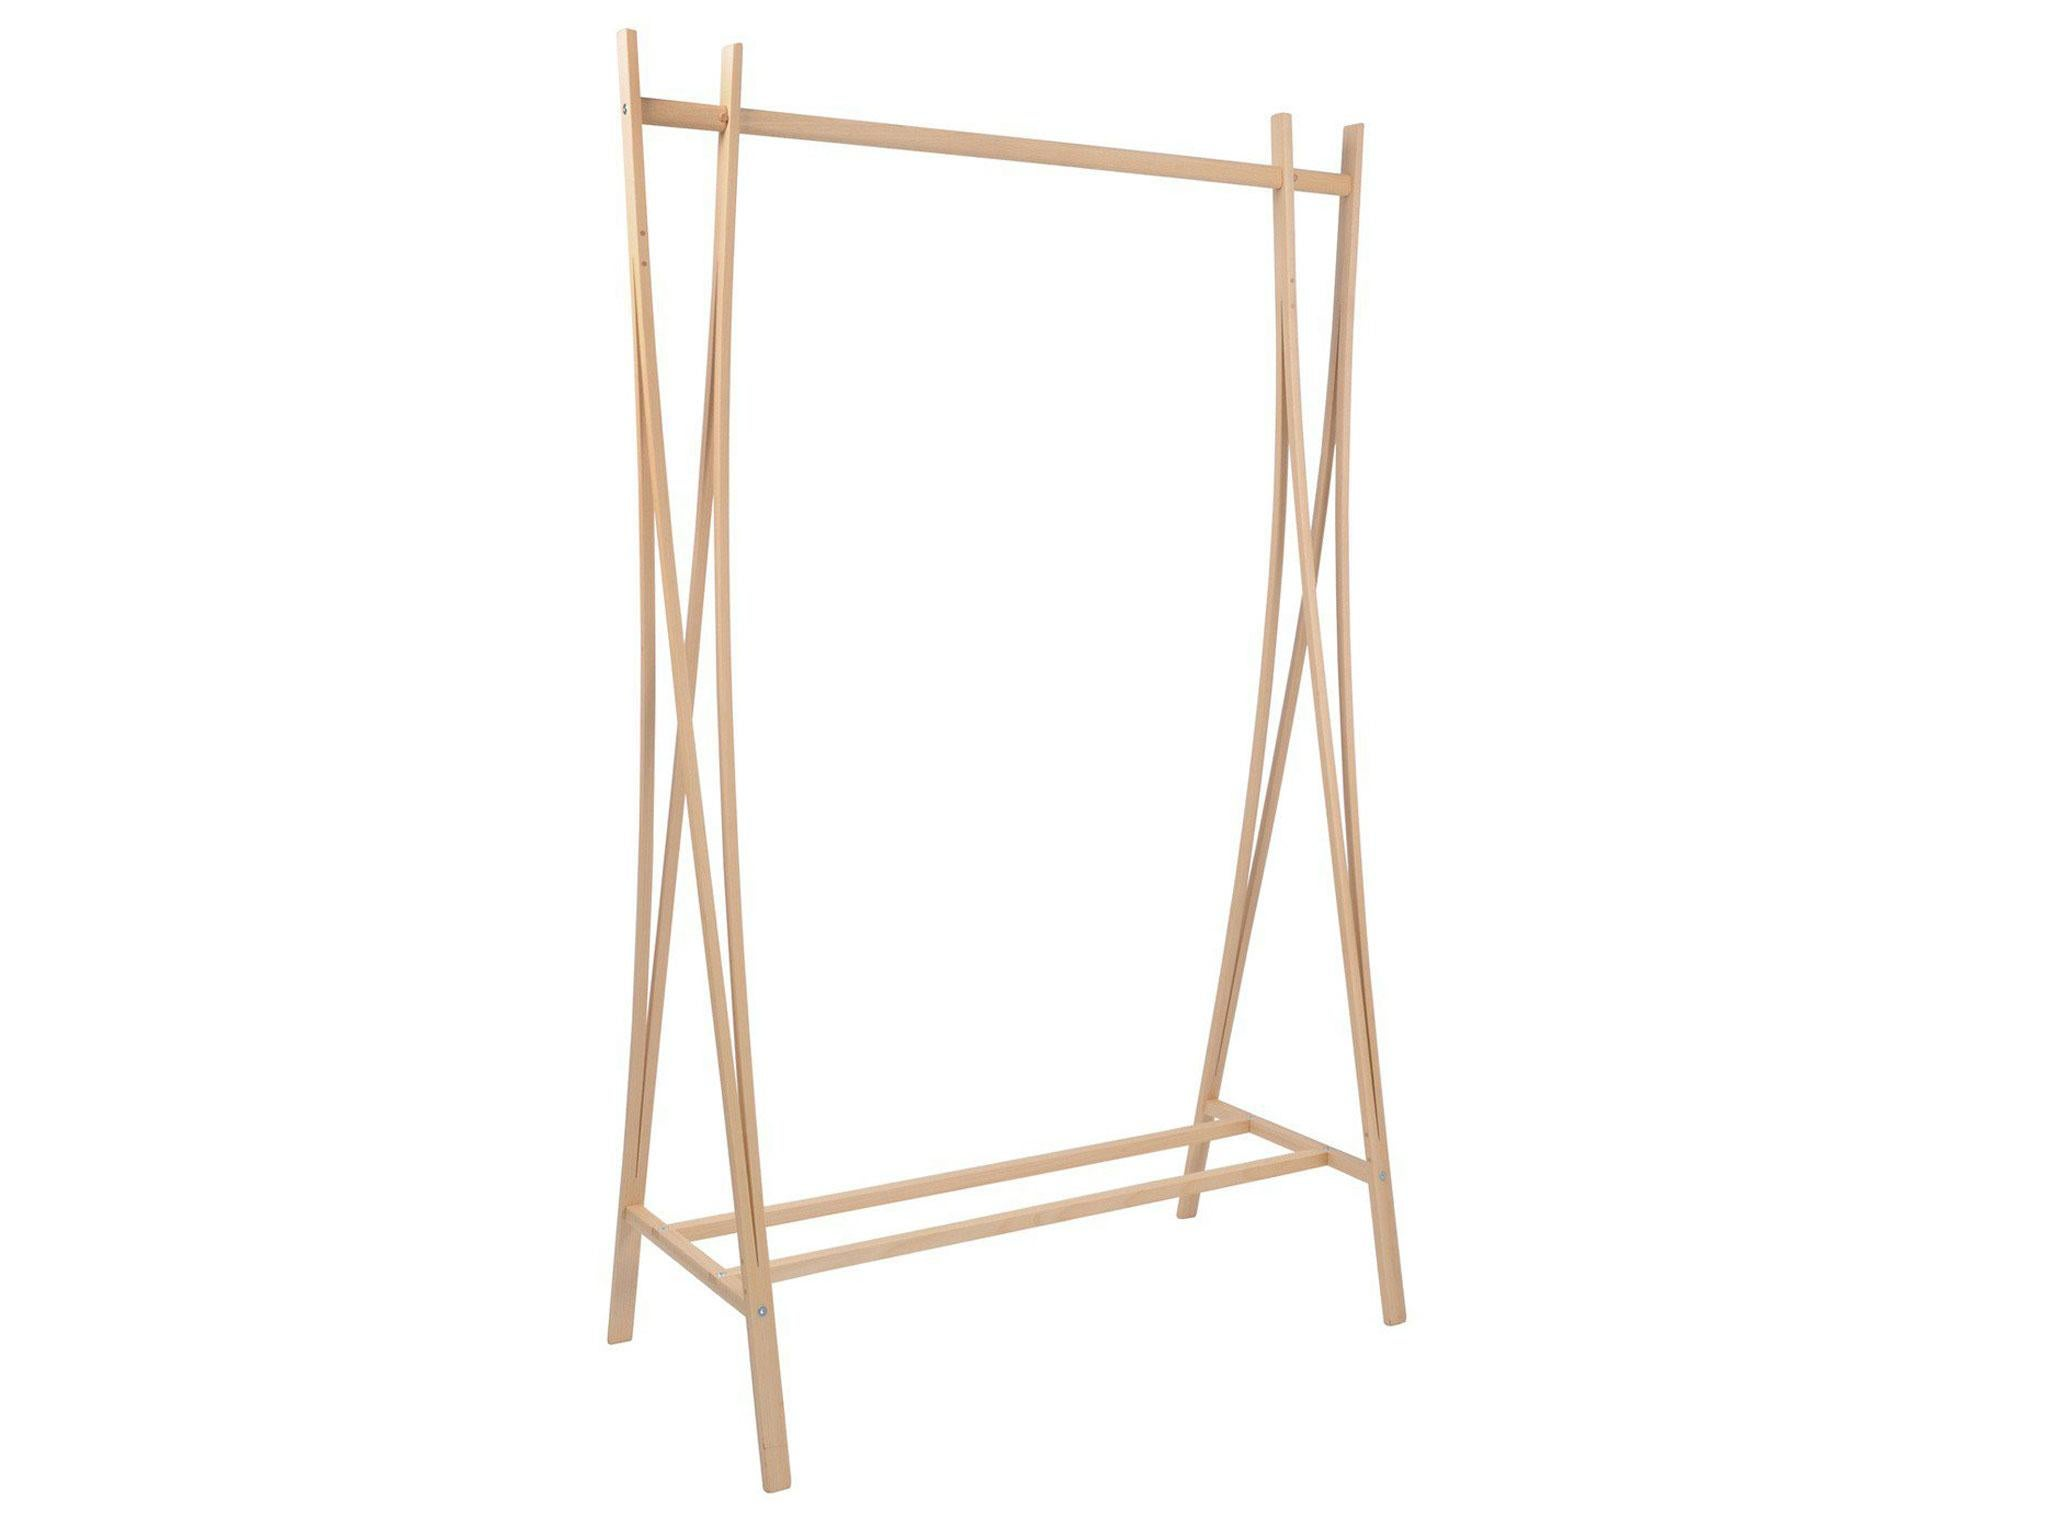 Are You Interested In Our Wall Mounted Wooden Clothes Rail